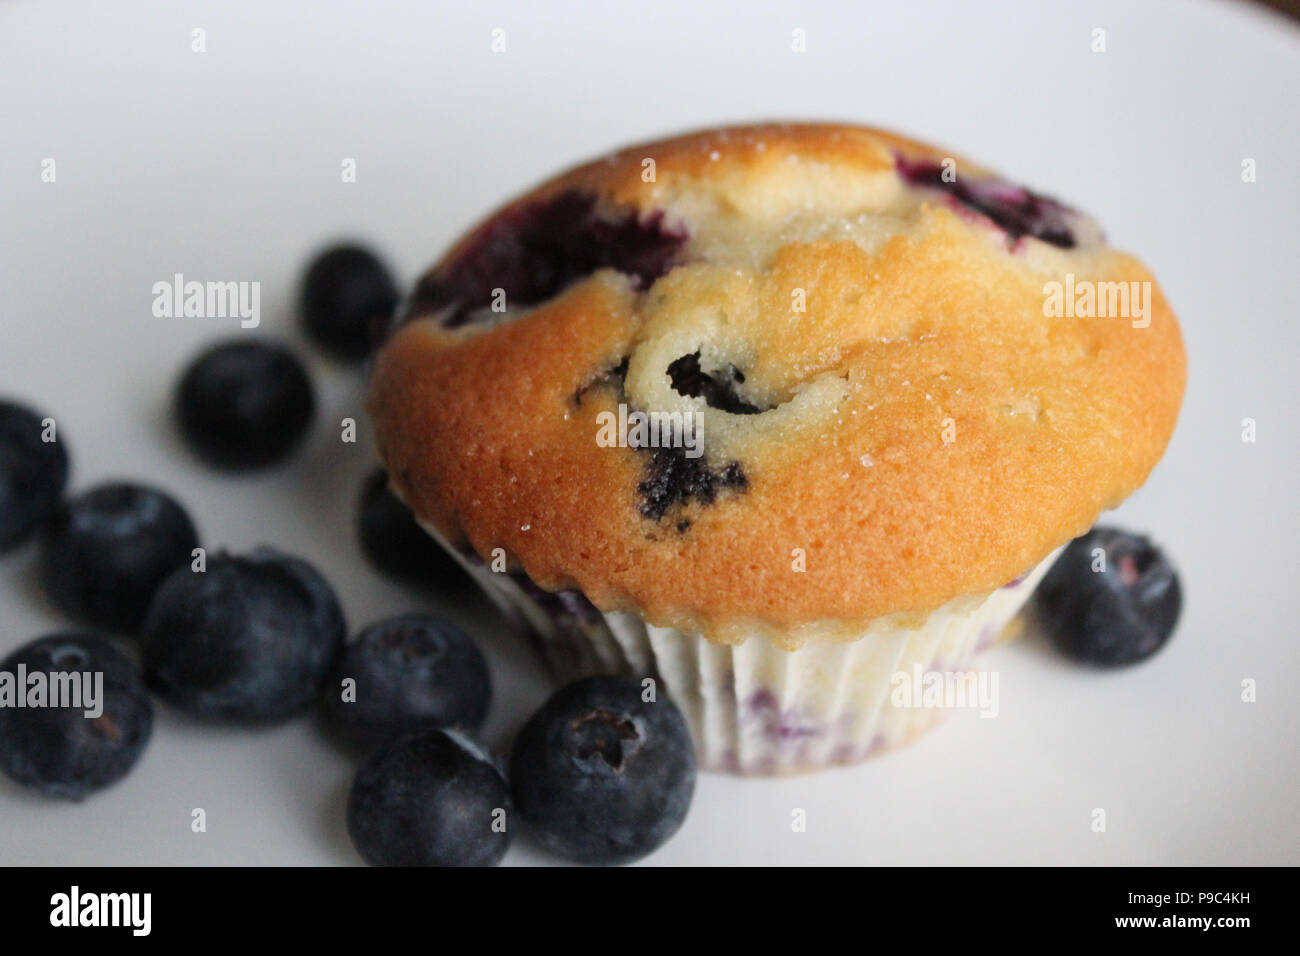 Homemade blueberry muffin - Stock Image